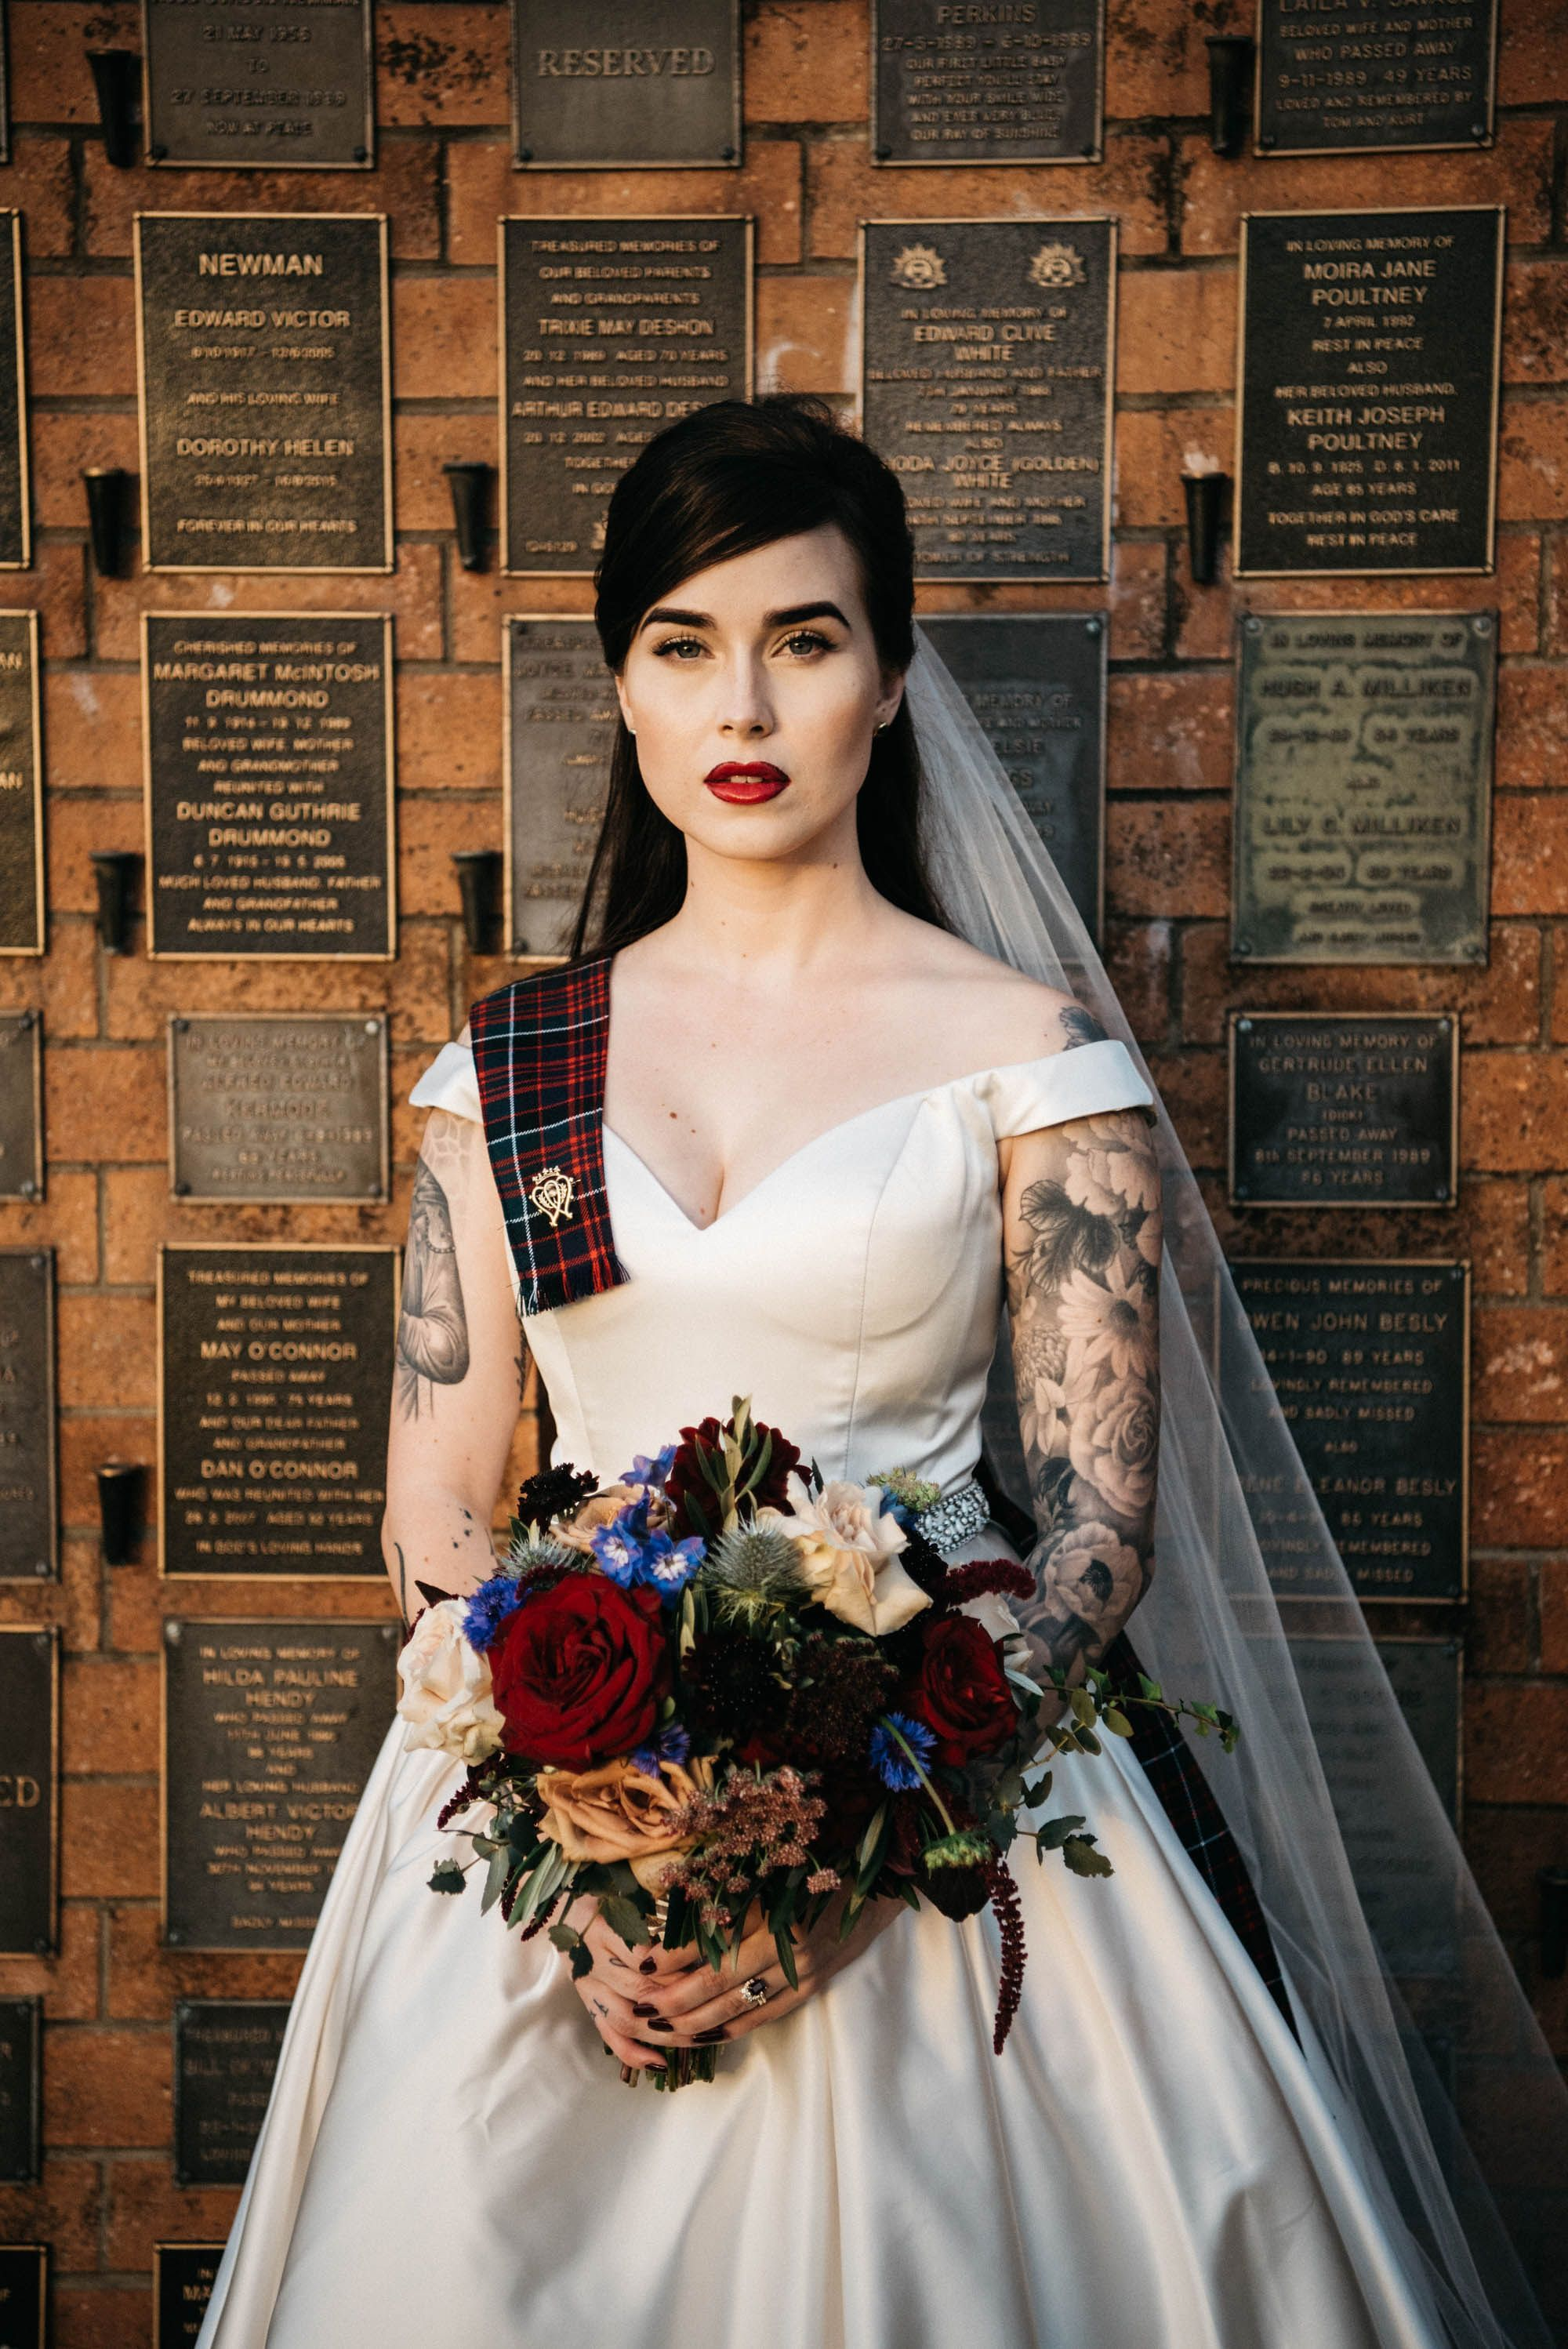 Dark Romantic Cemetery Wedding With Traditional Scottish Touches In 2020 Scottish Wedding Dresses Dress Code Wedding Scottish Wedding Themes